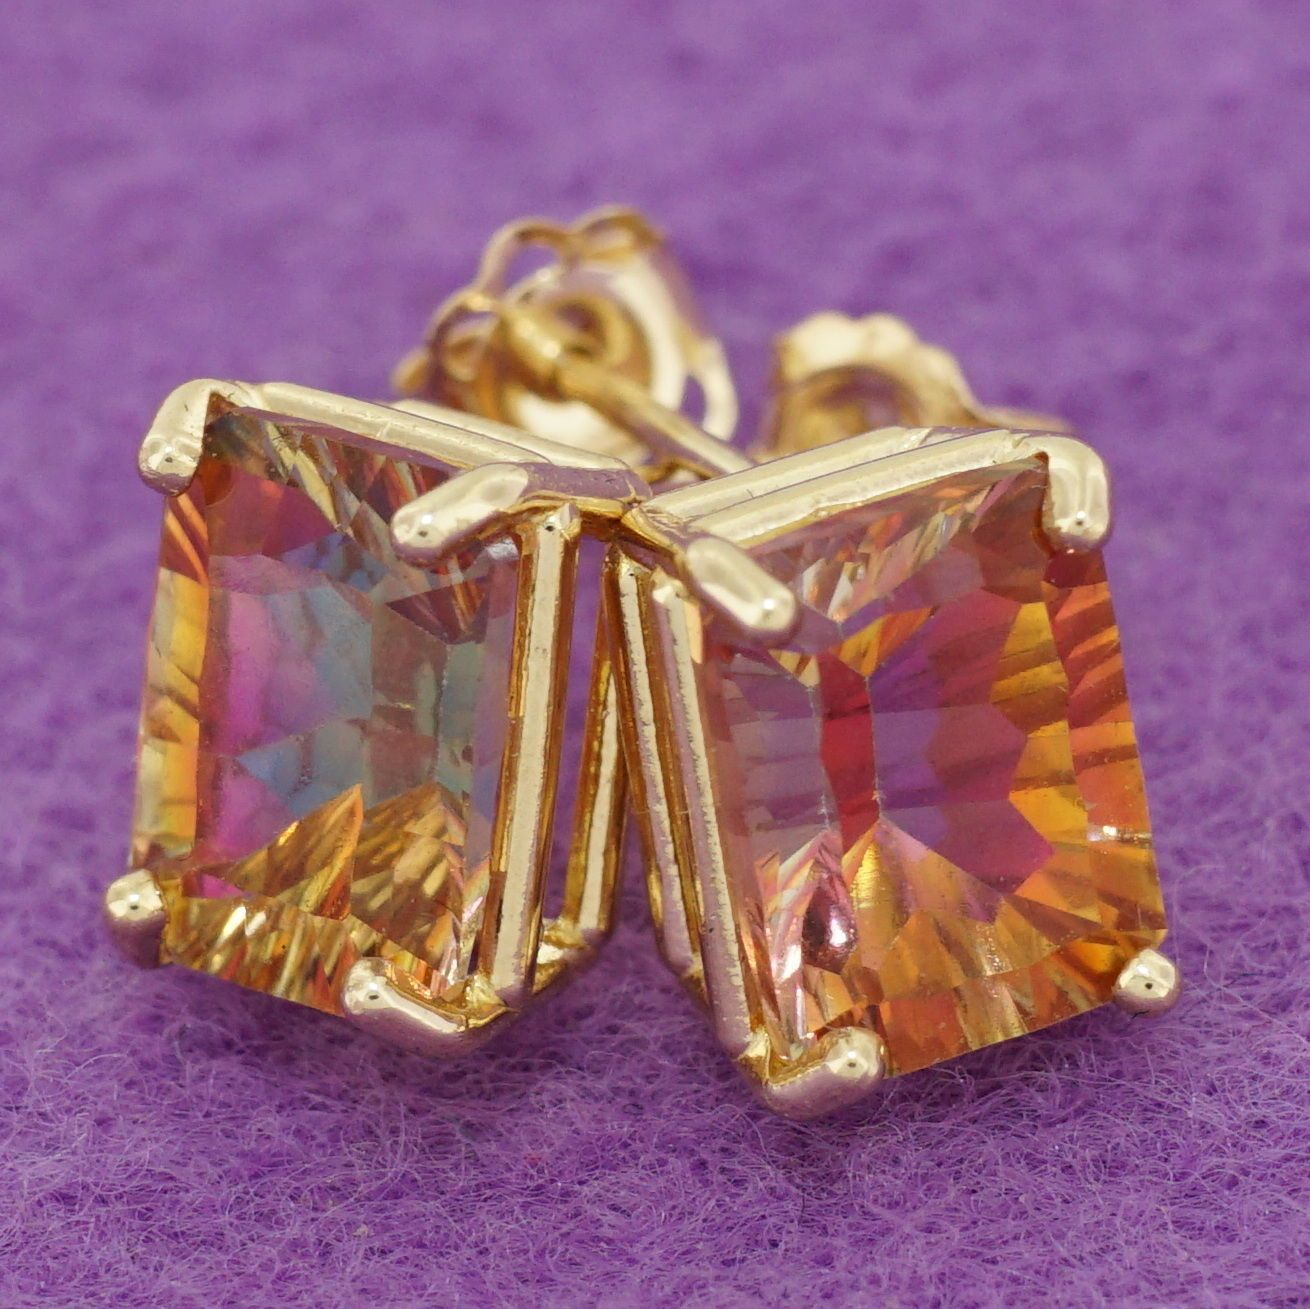 These #earrings show such a beautiful mix of vibrant orange and pink. Can't help but love these simple studs! :)